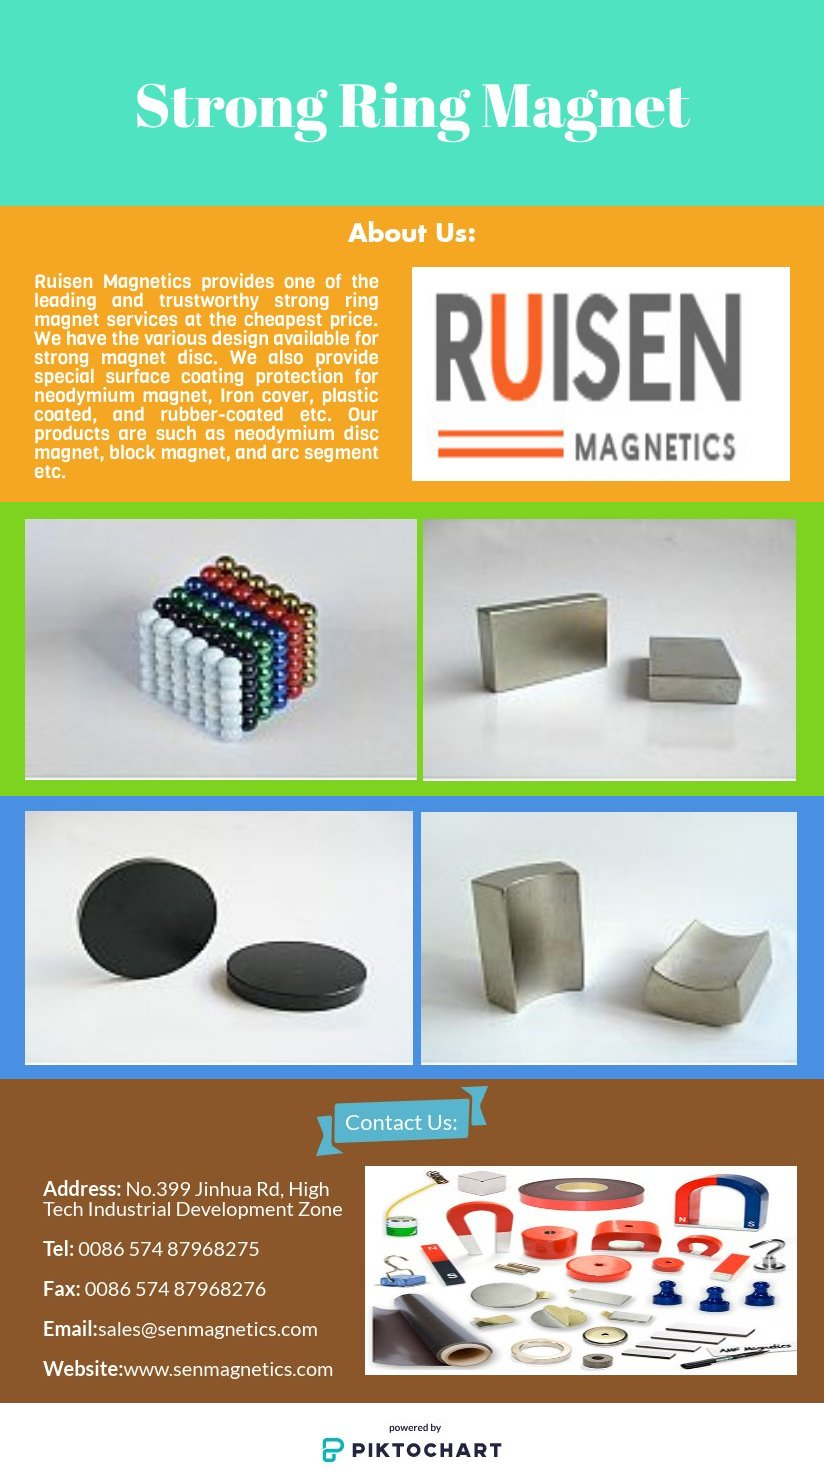 Affordable Strong Ring Magnet Services